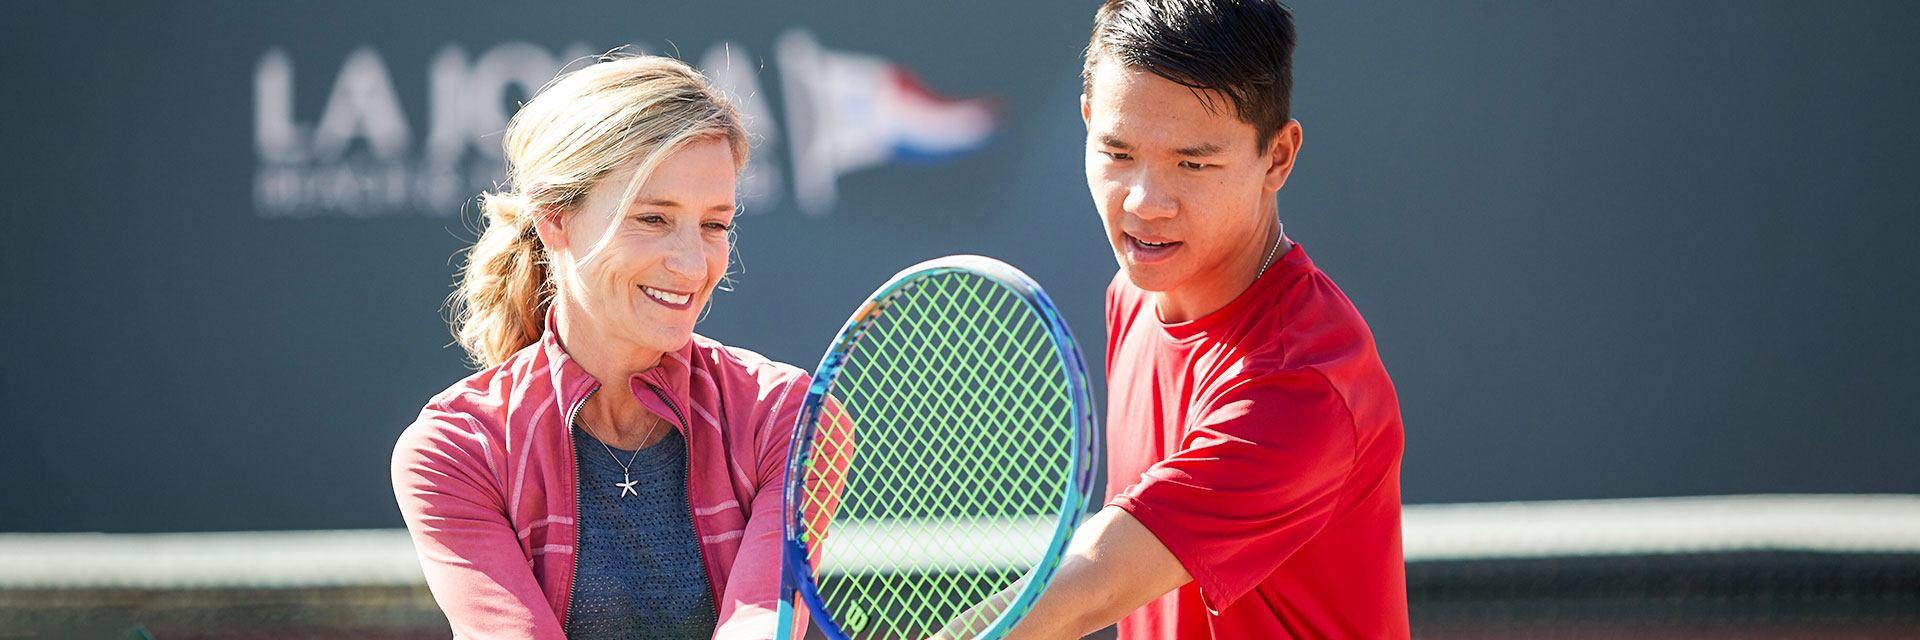 Lessons And Services at La Jolla Beach And Tennis Club, California